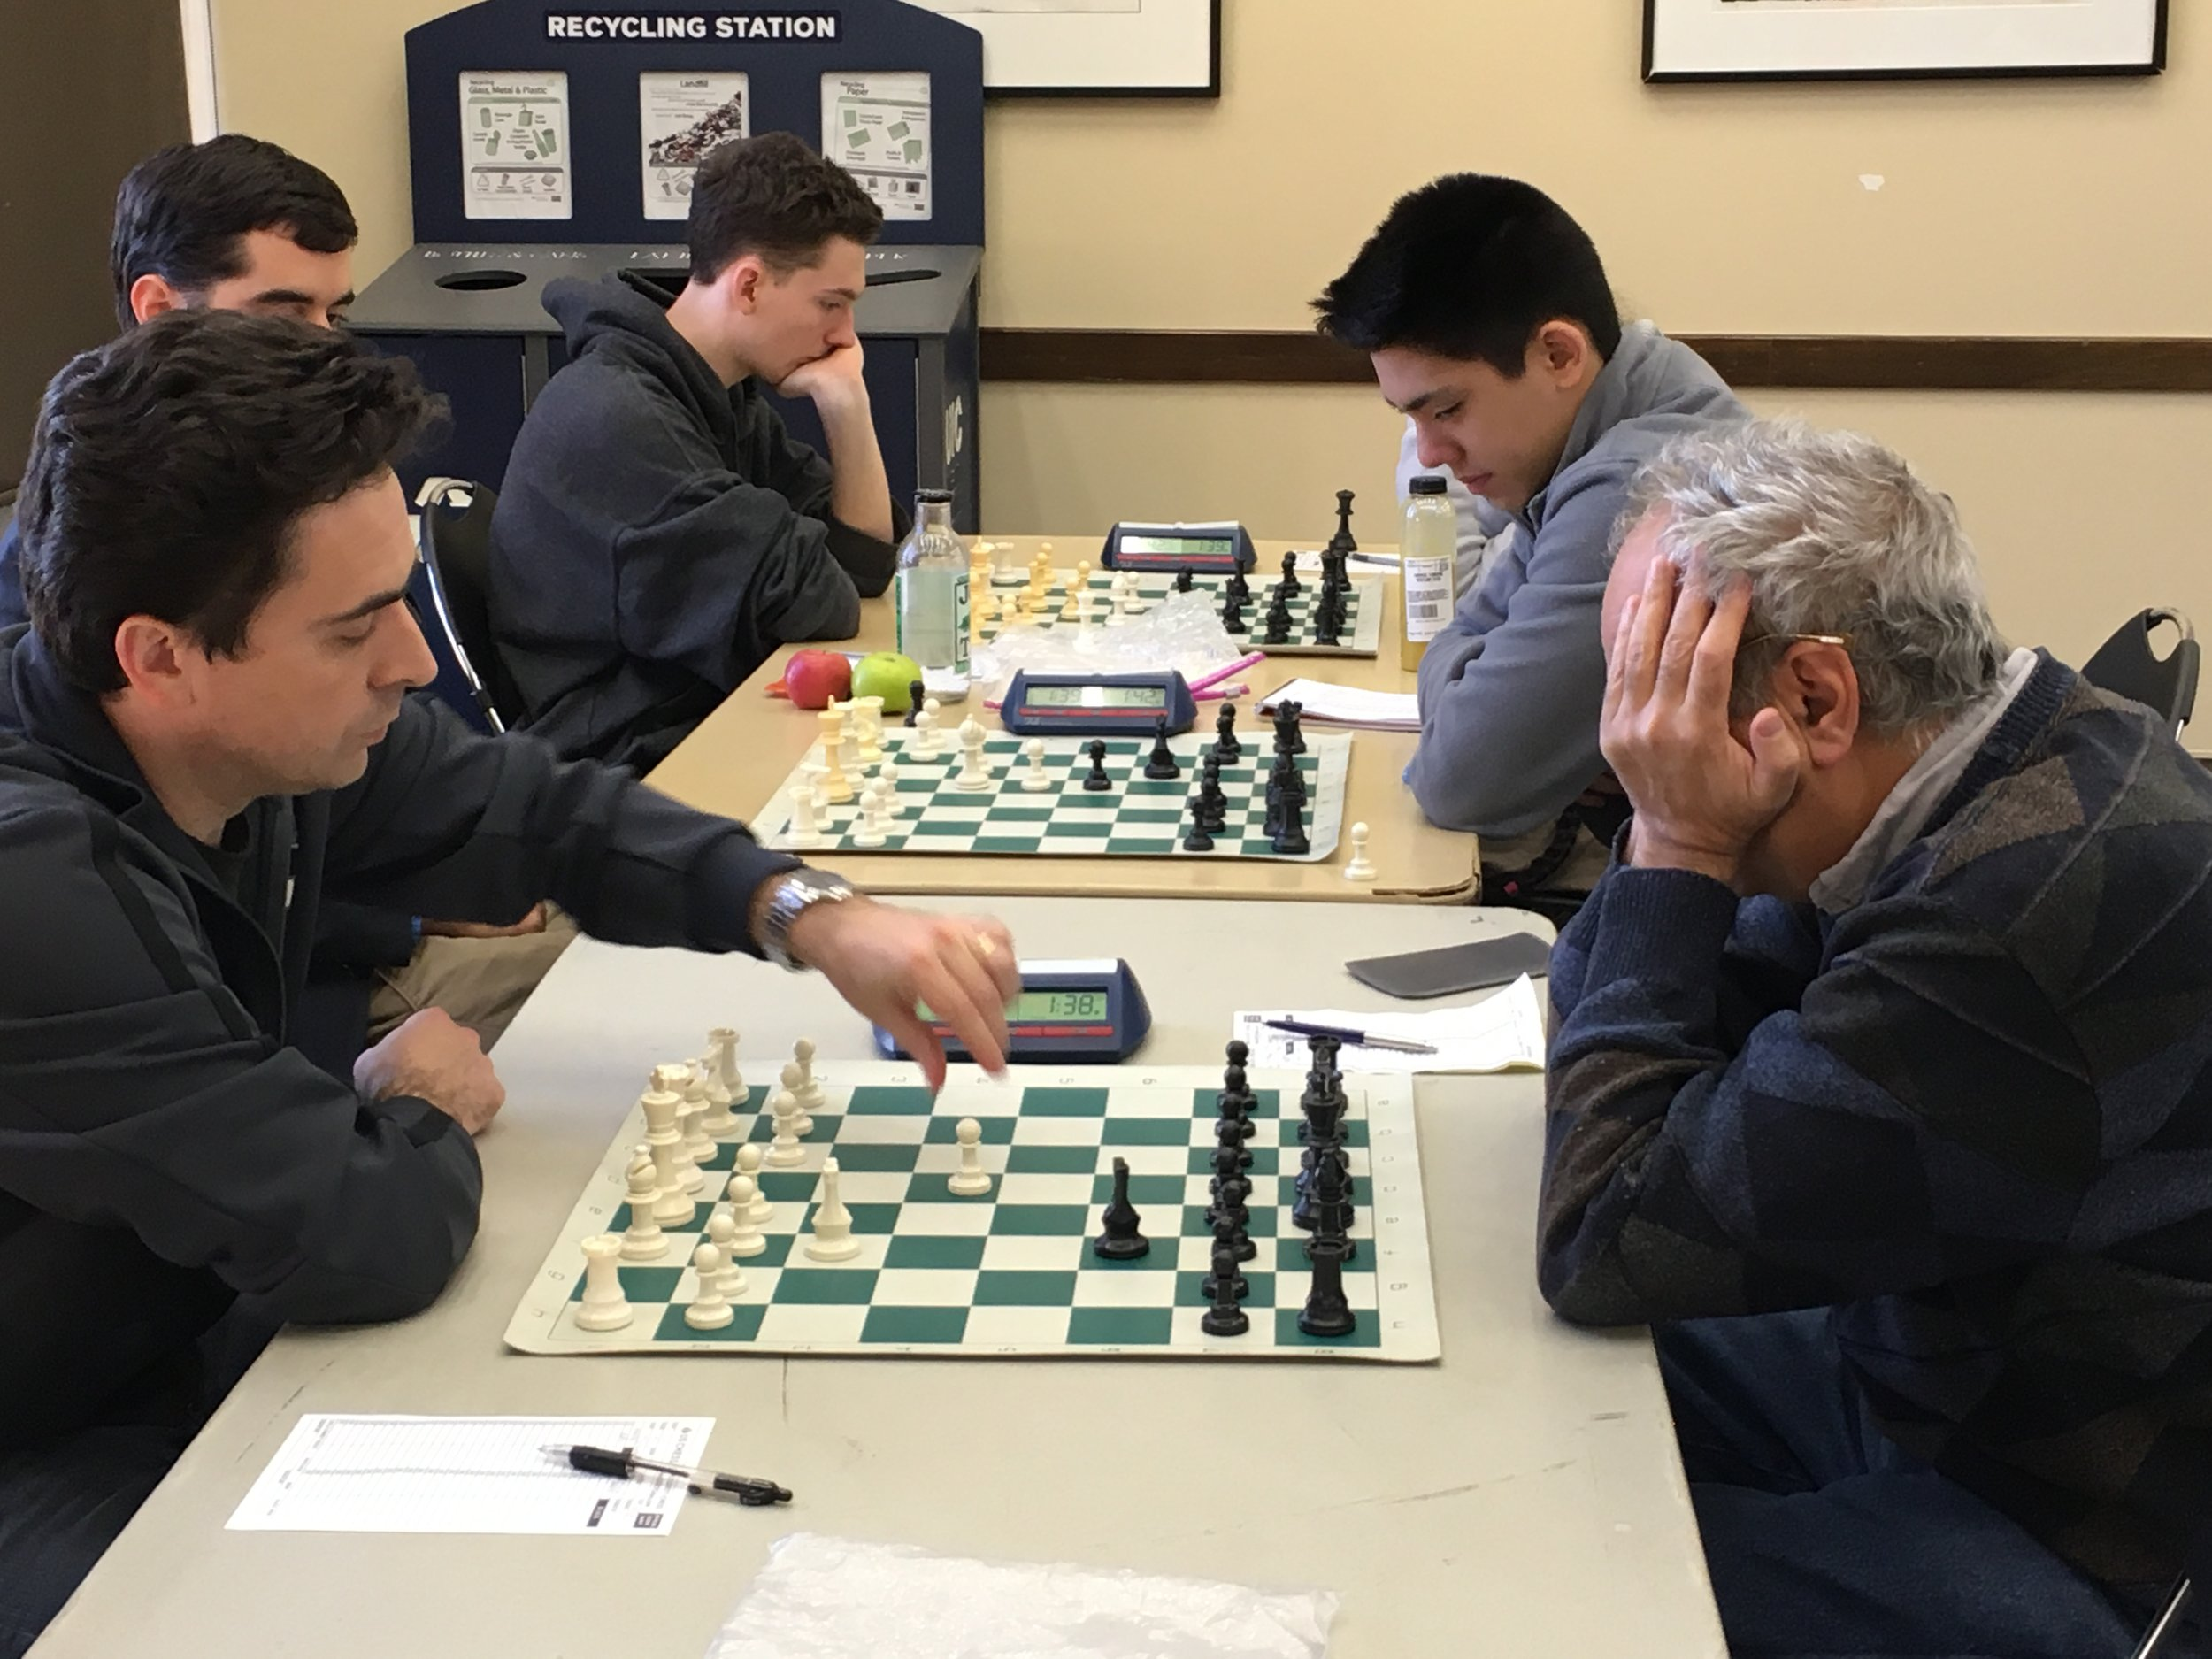 Back in Russia, Igor Tsyganov competed with his friends Svidler, Zvjaginsev, and Najer, all whom broke 2680. At the Class, he held Grandmaster Dmitry Gurevich to a draw.  Igor's daughter Margarita Tsyganova helped pay for her college education by tying for third in the Under 1500 section. In between soccer games, son Anthony played in both days' Rated Beginners' Opens